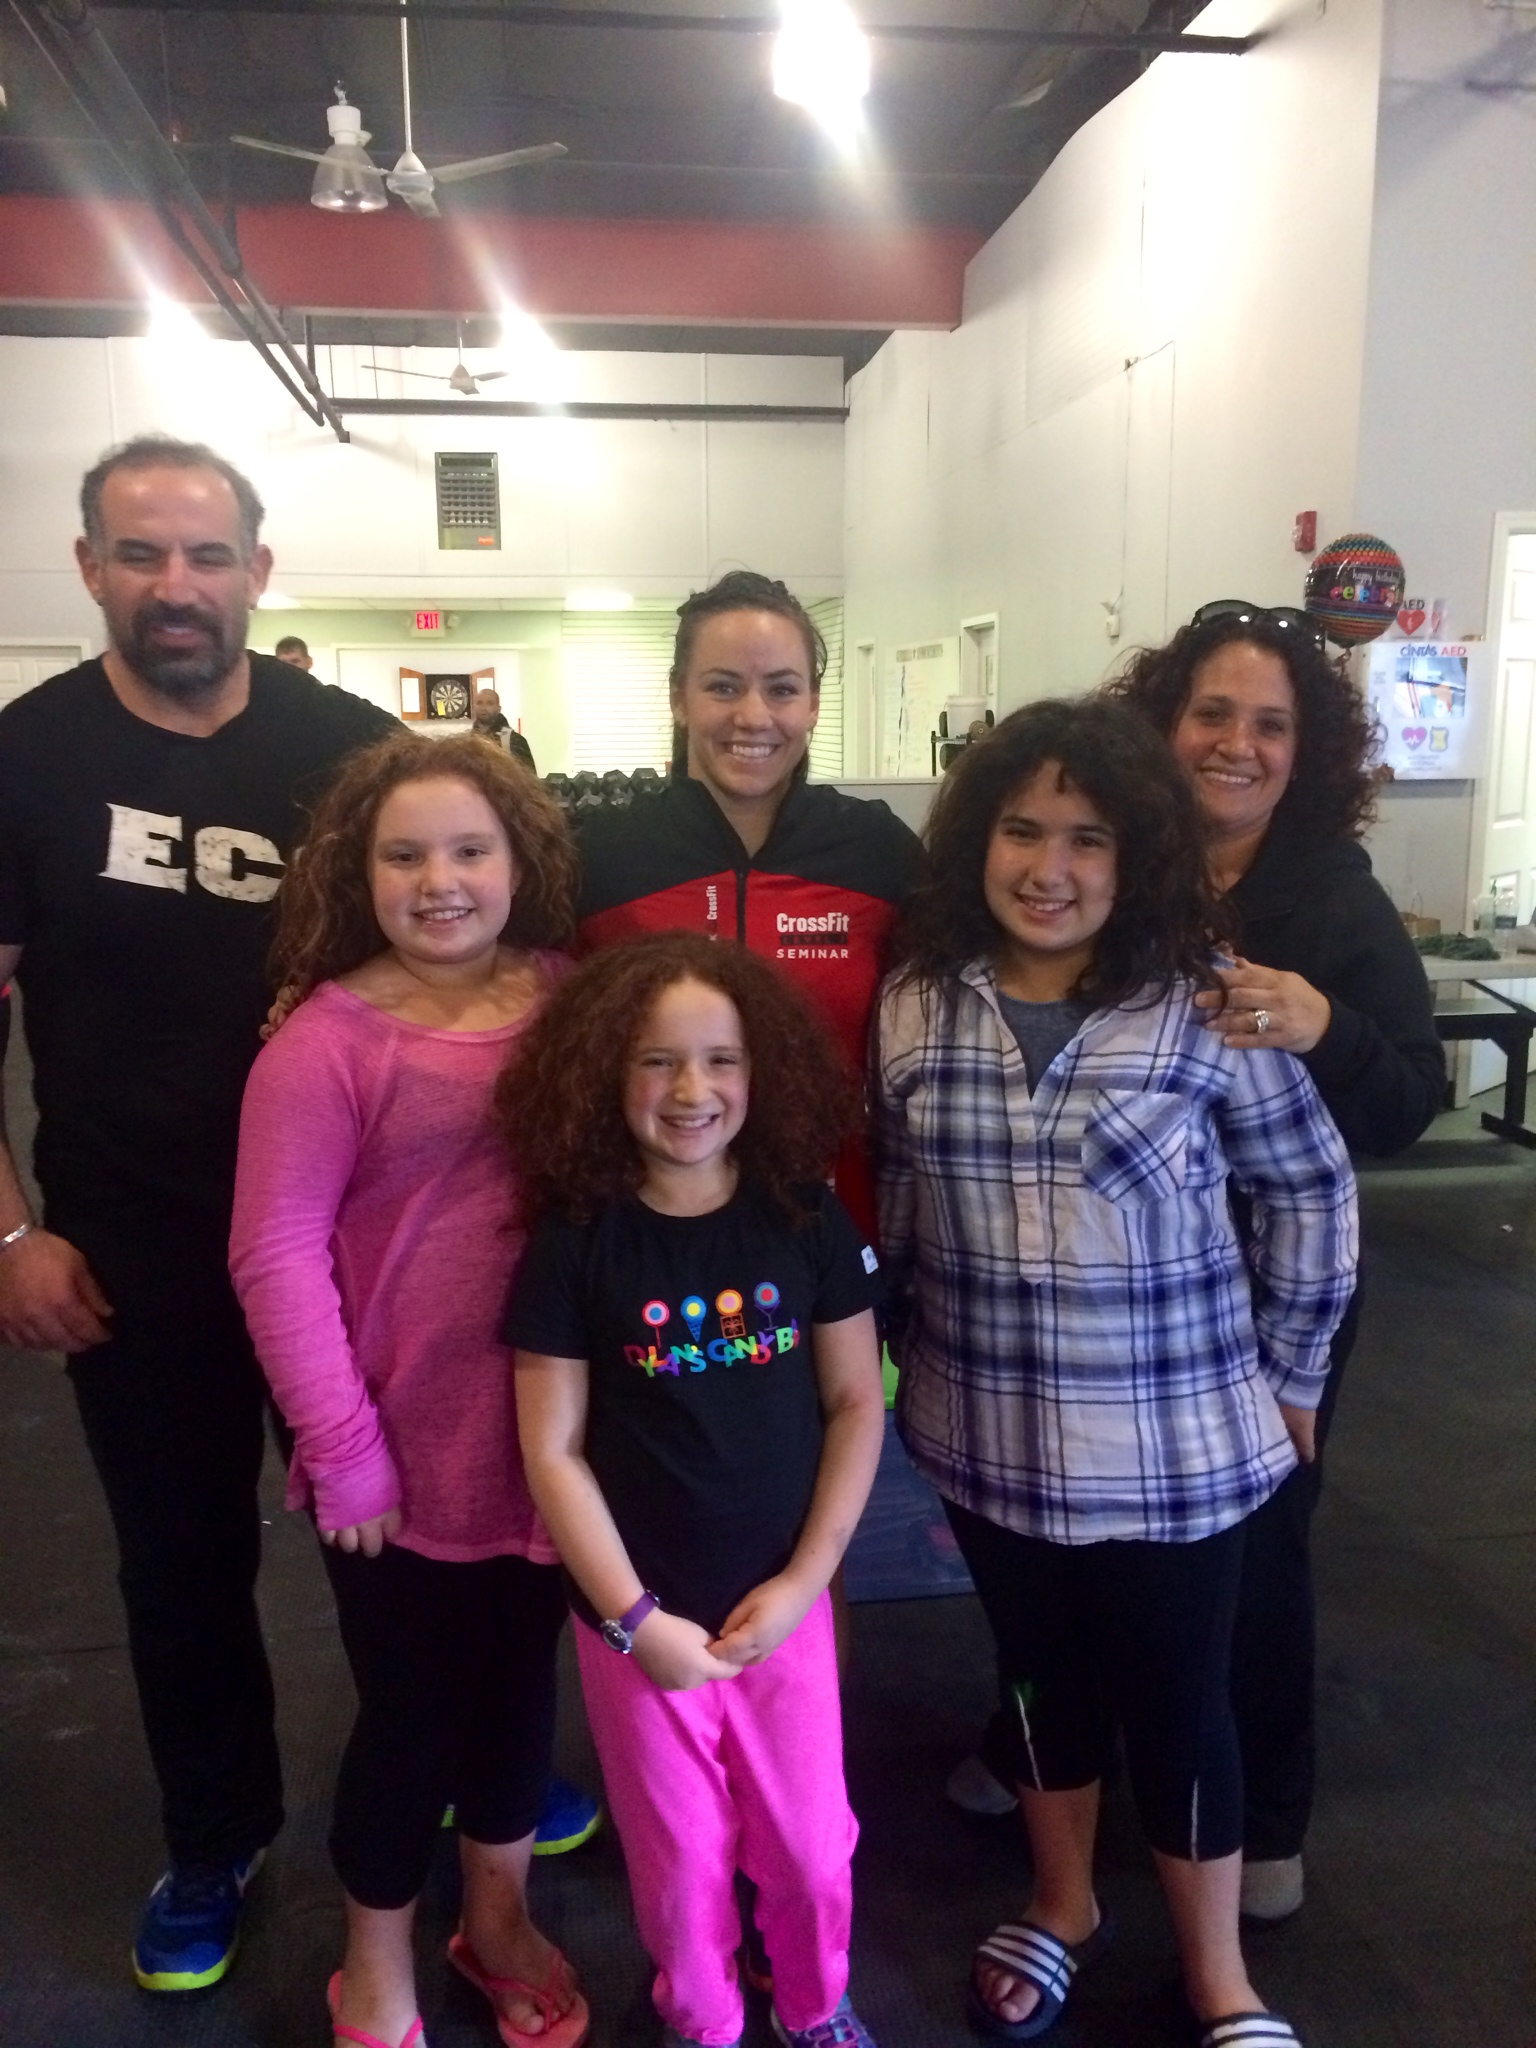 Fun weekend recertifying my CrossFit level 1 with Camille - CrossFit Champion 2014